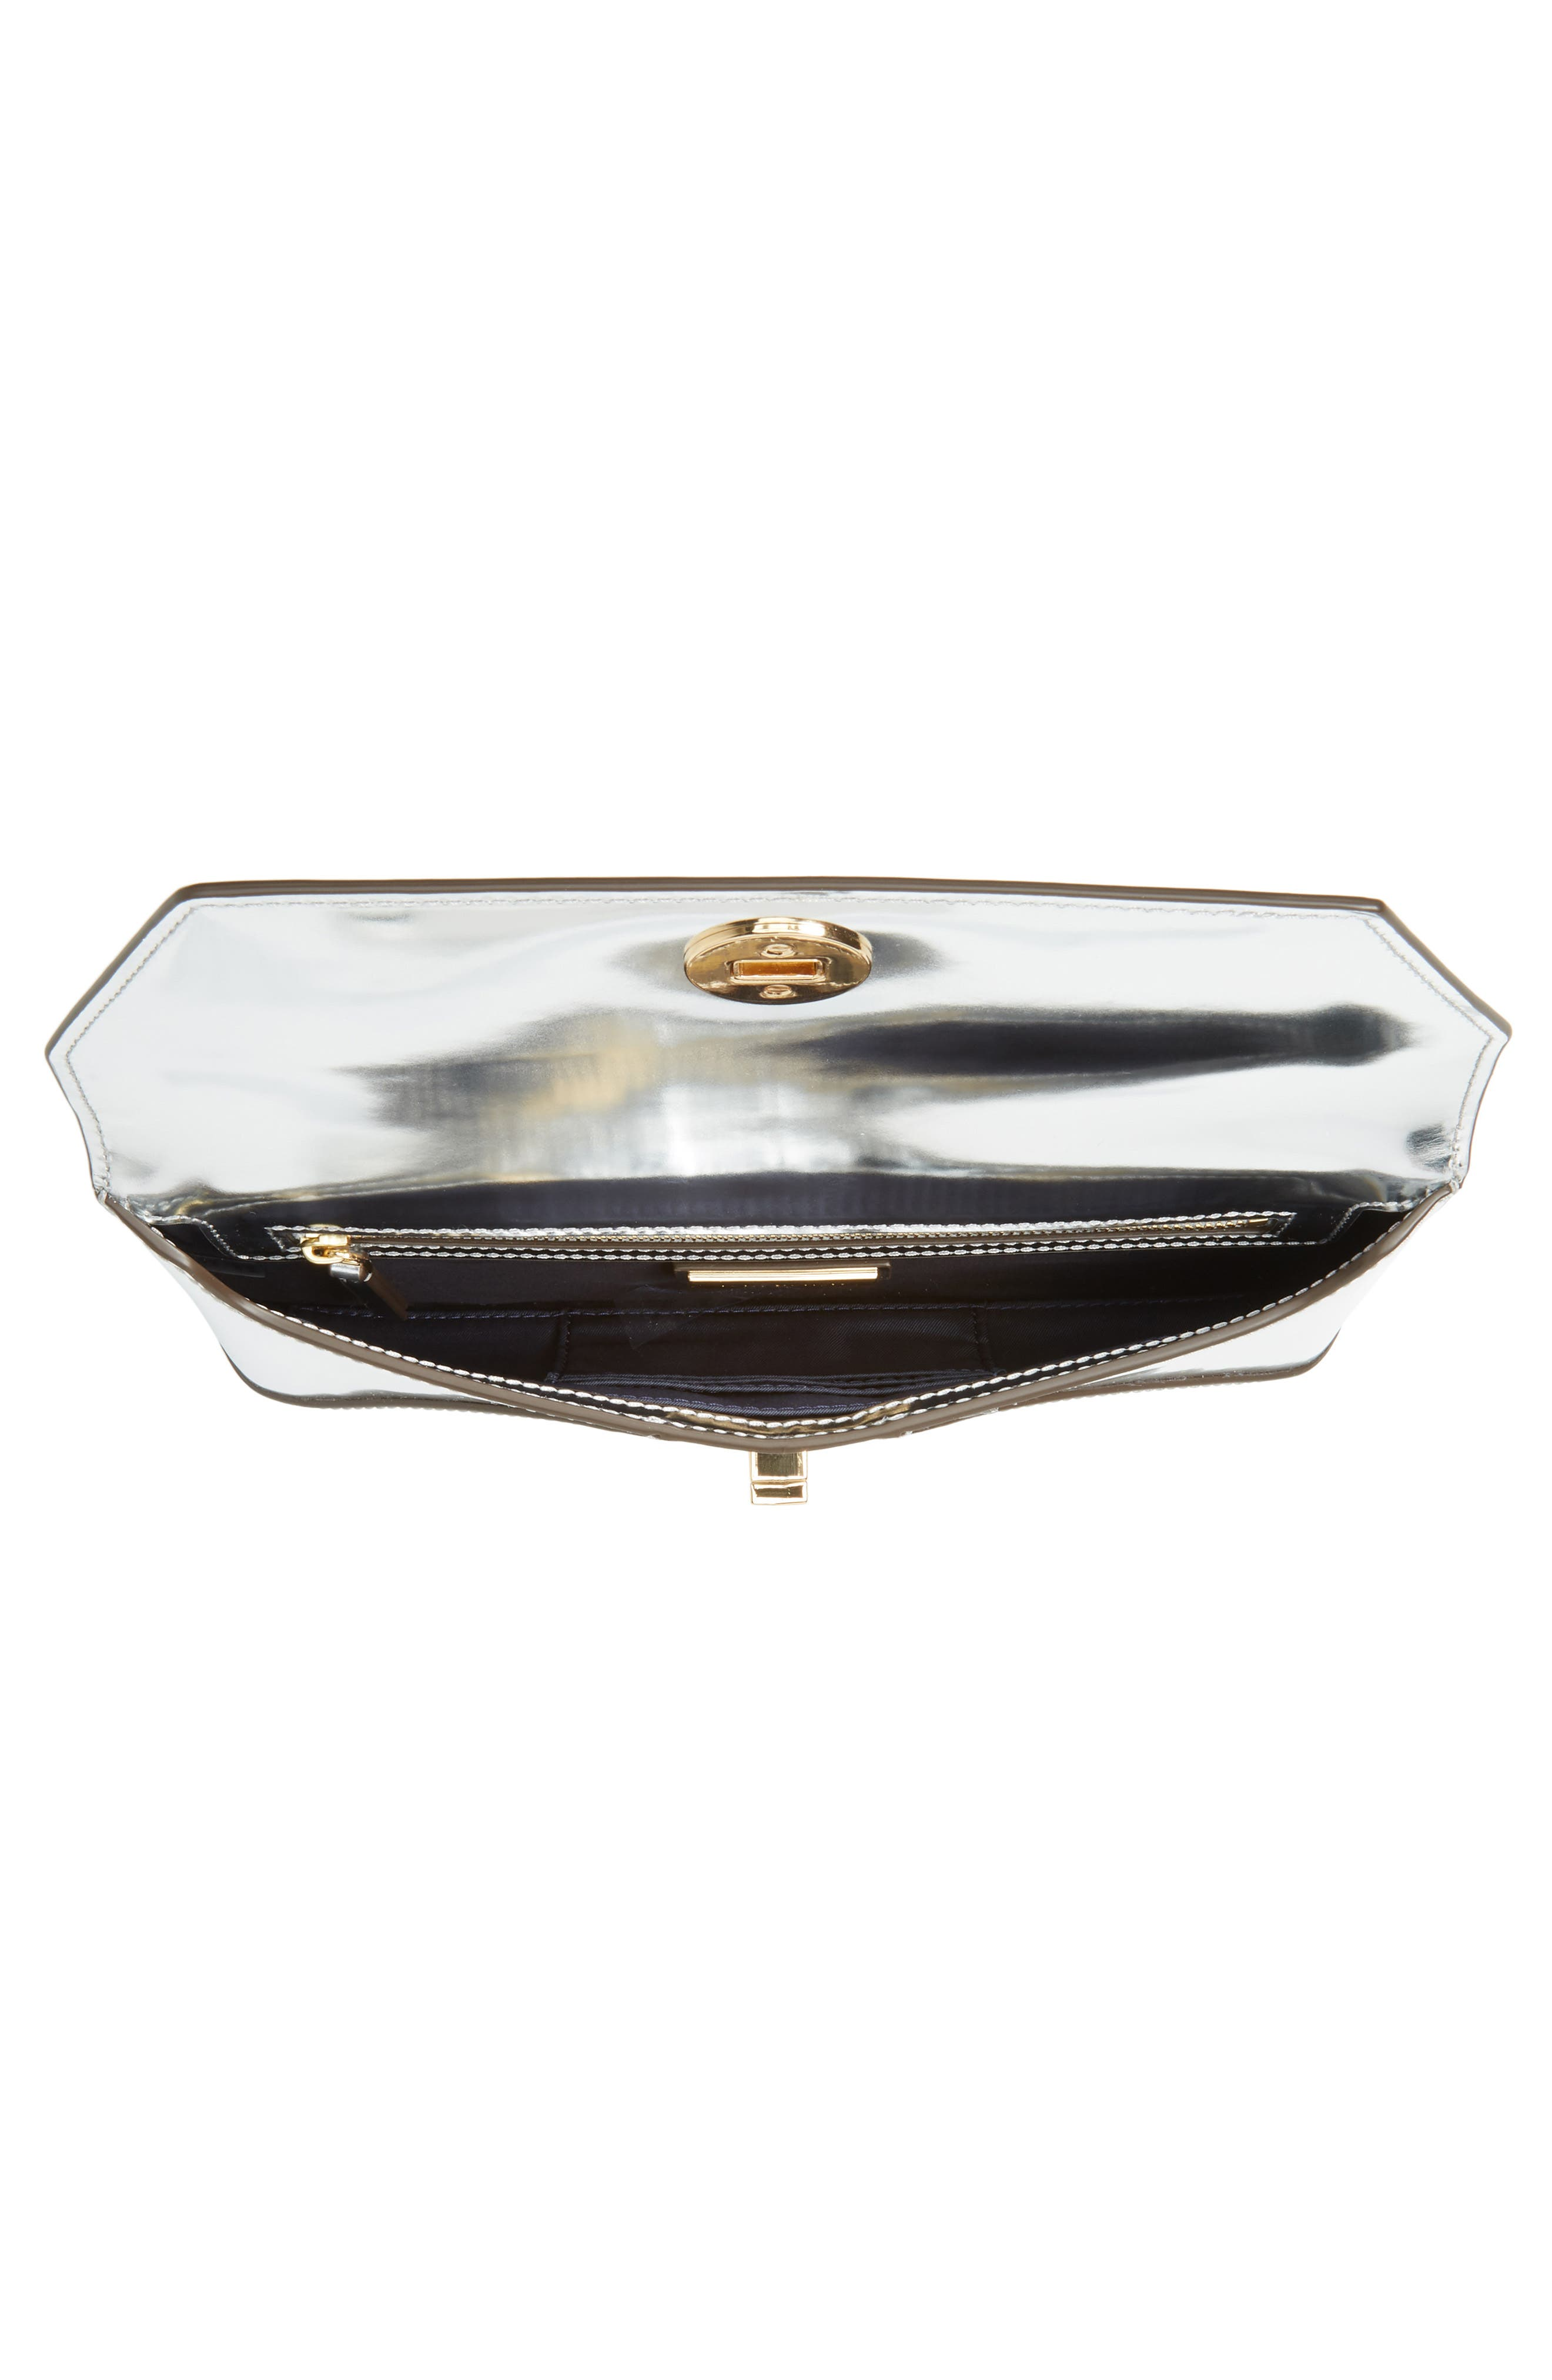 TORY BURCH, Kira Leather Envelope Clutch, Alternate thumbnail 5, color, MIRROR METALLIC SILVER